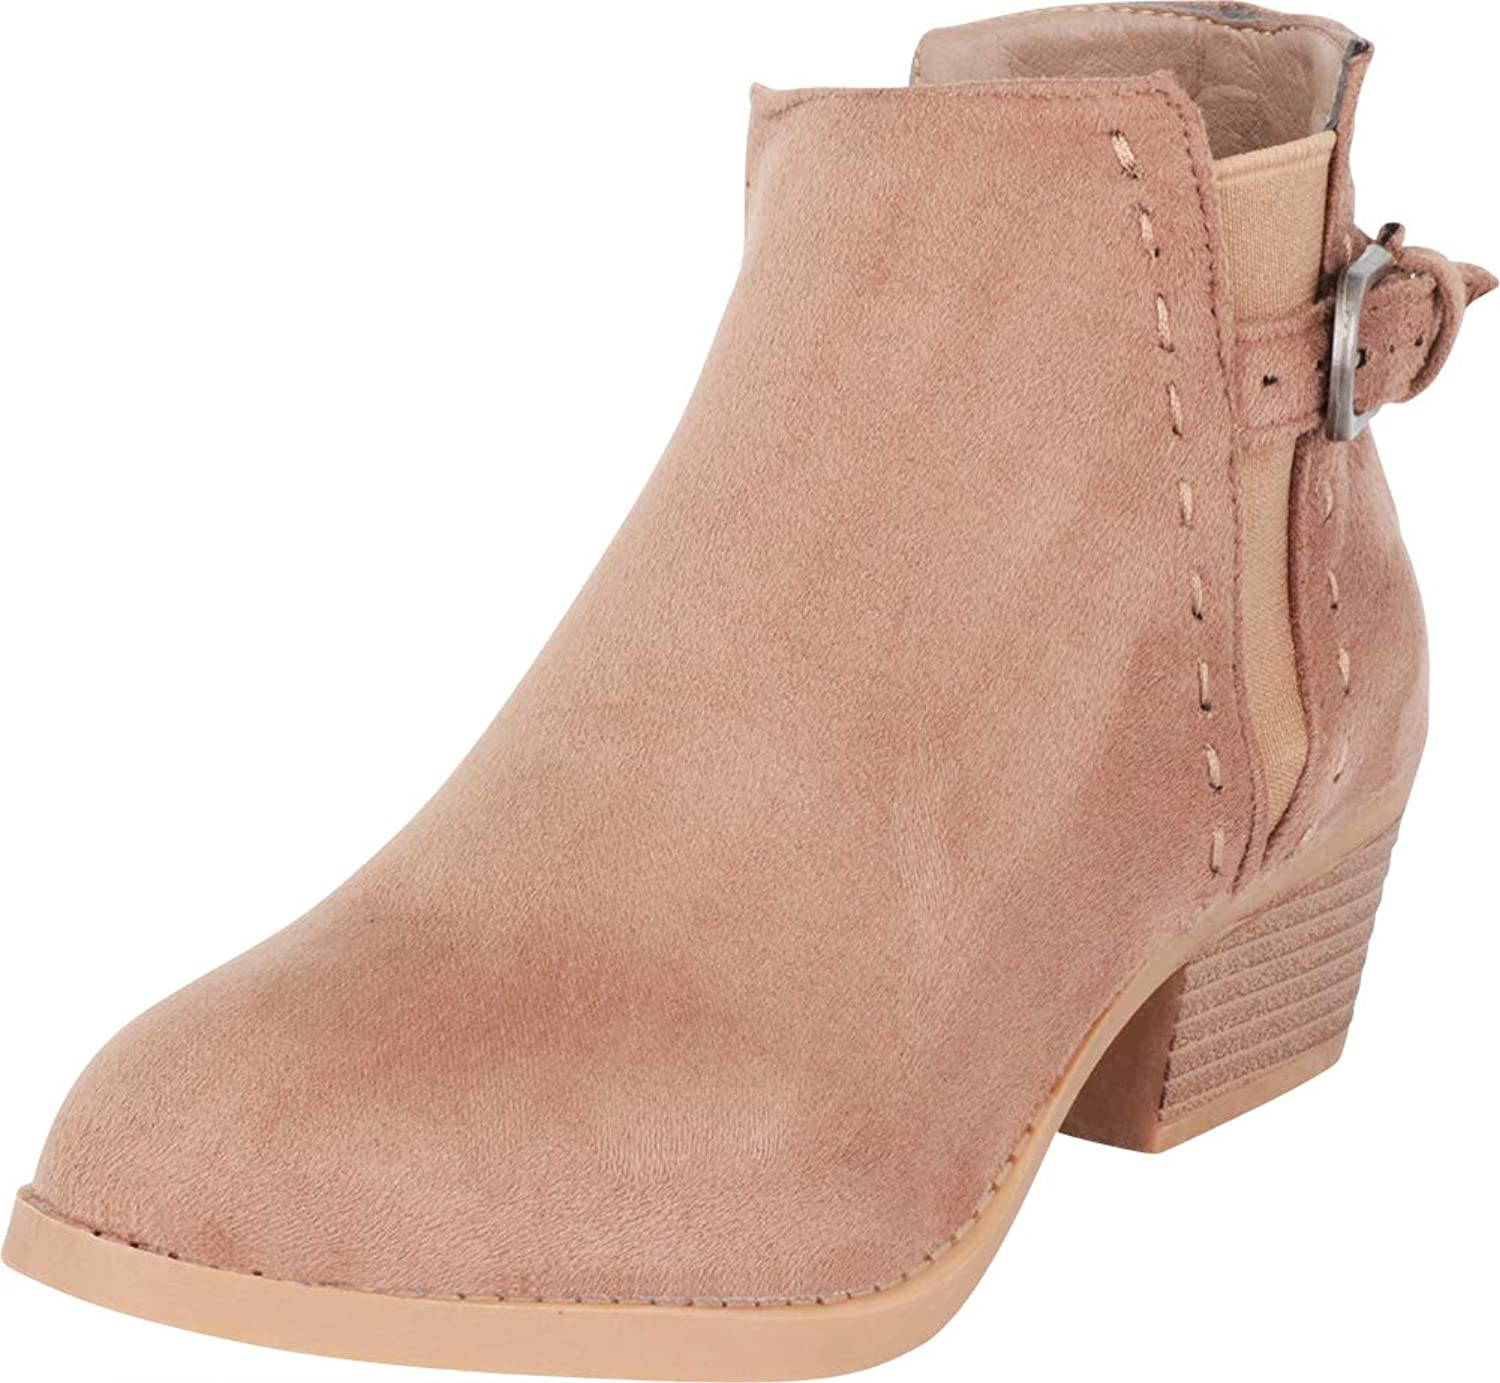 Cambridge Select Women's Side V Cutout Chelsea Stretch Low Stacked Heel Ankle Bootie